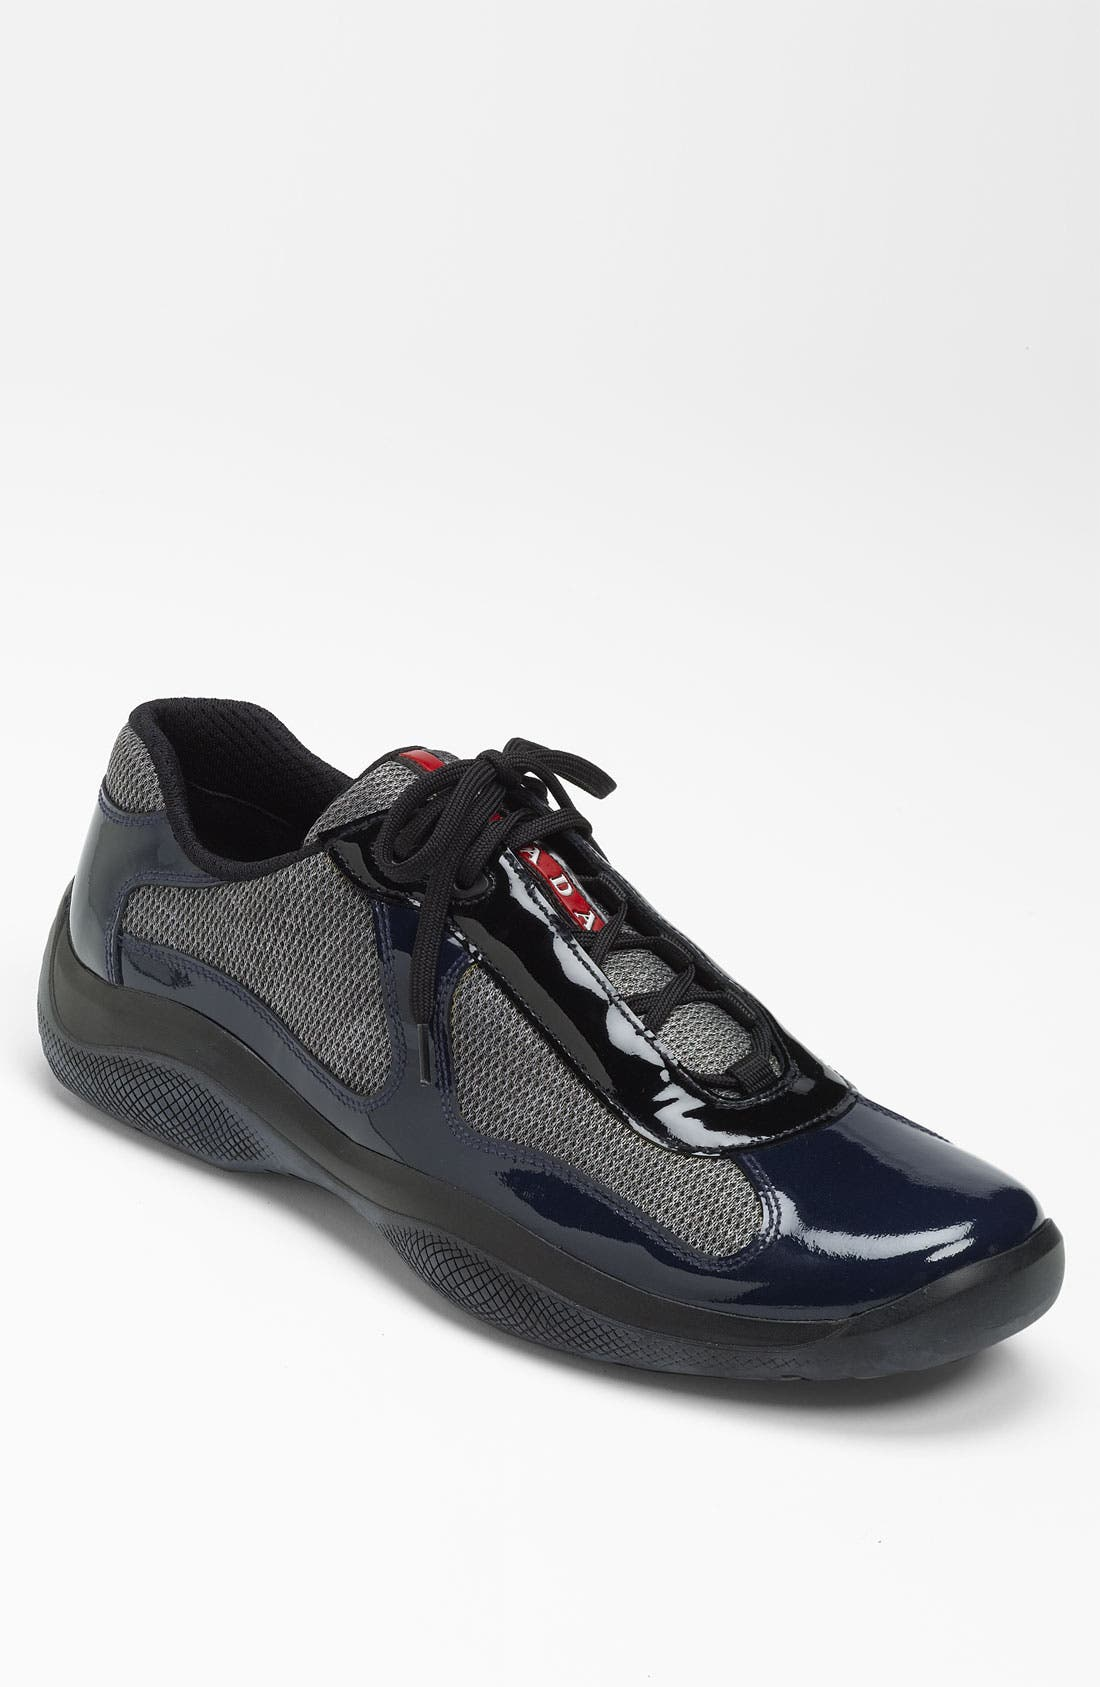 Alternate Image 1 Selected - Prada 'America's Cup' Mesh & Leather Sneaker (Men)